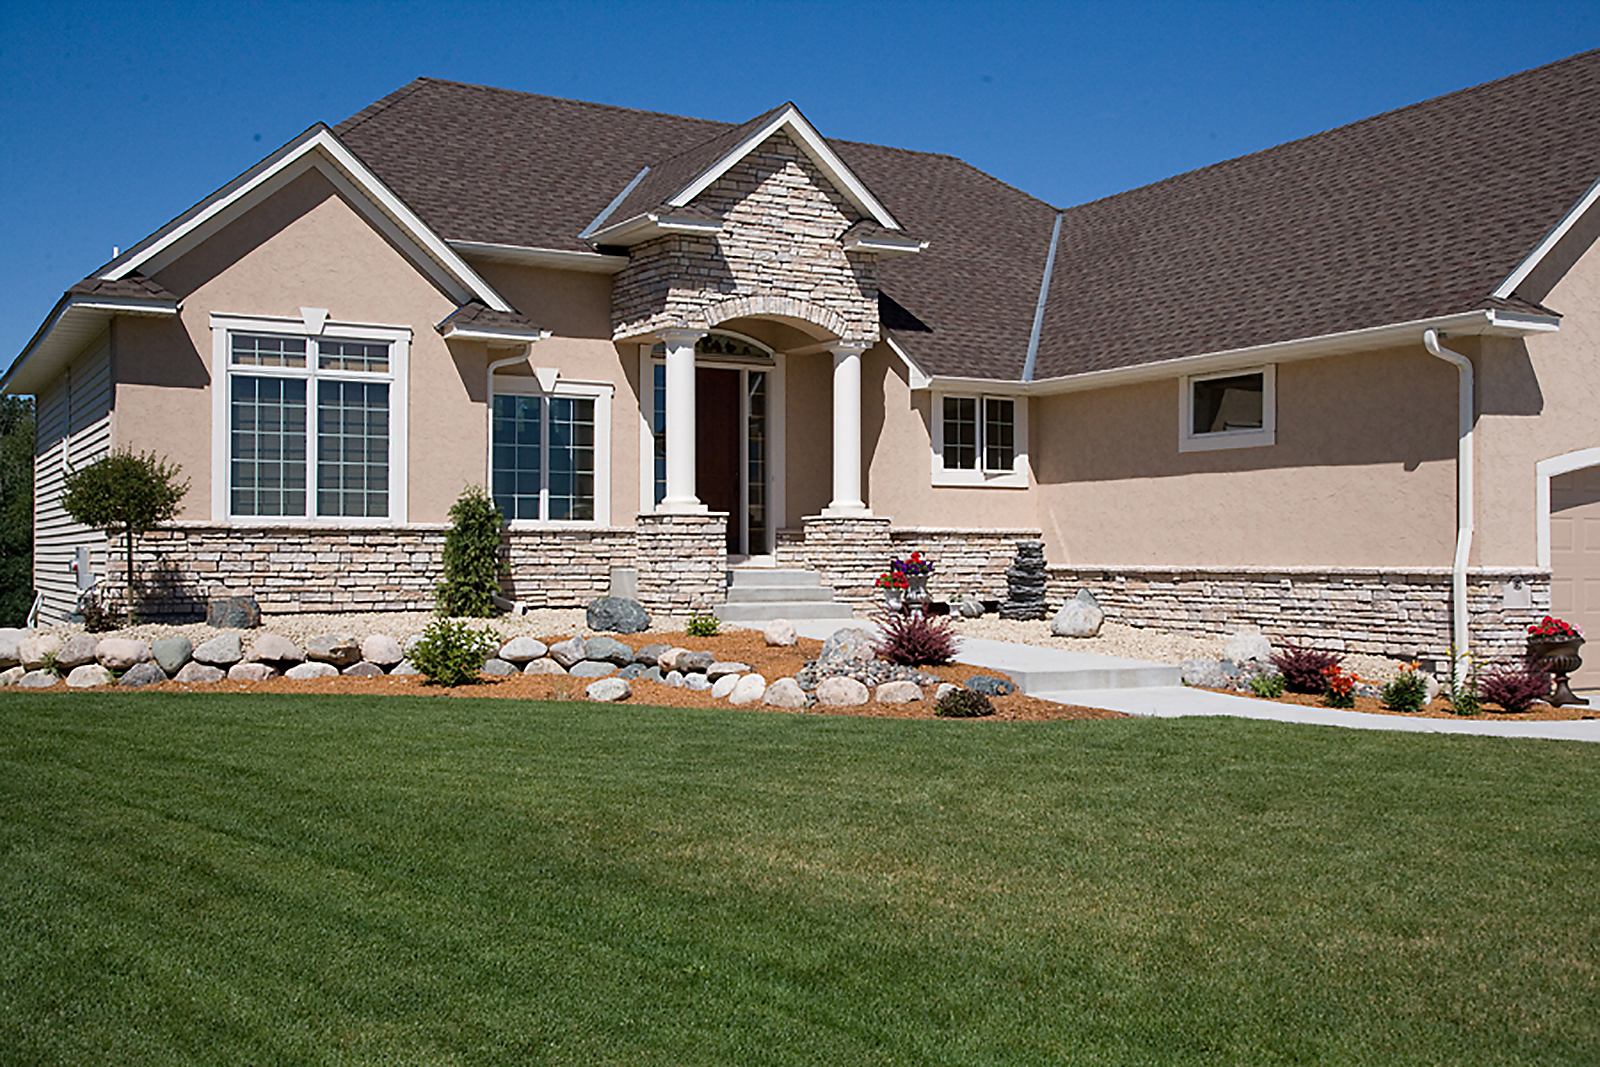 timberline architectural shingles colors. Timberline Architectural Shingles Colors N